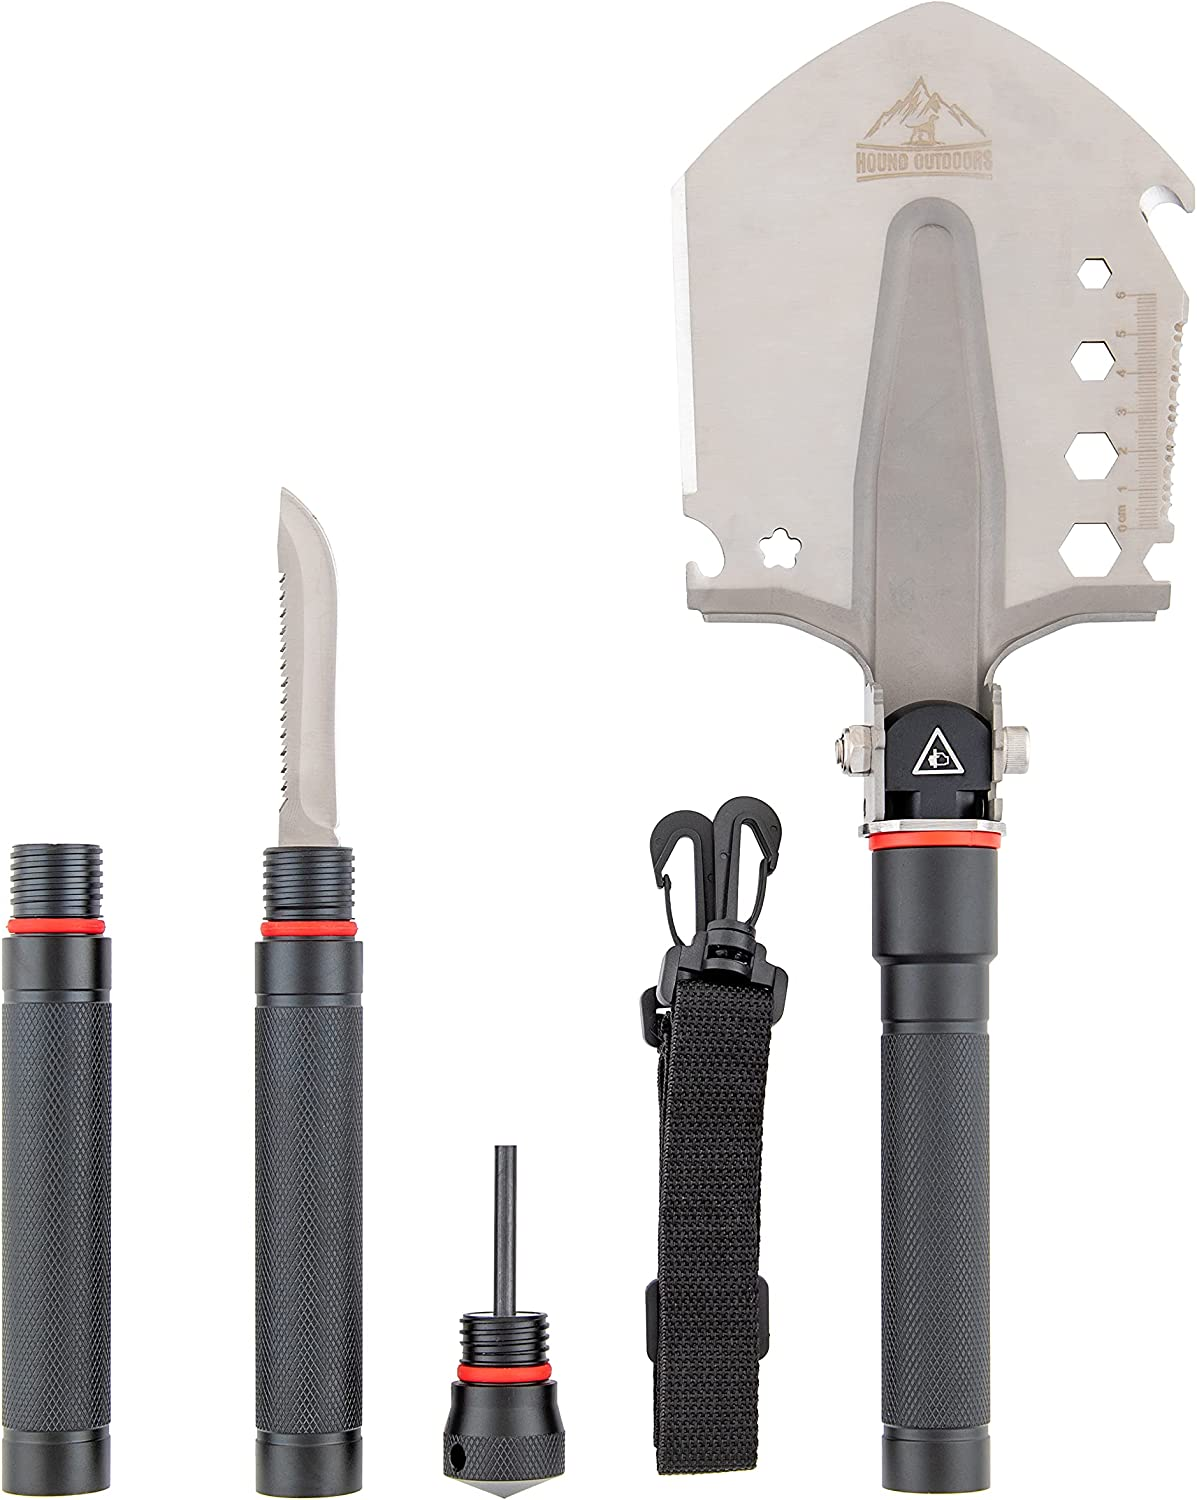 Multipurpose Folding Tactical Raleigh Mall Shovel Collapsible Po - 2021 new Foldable